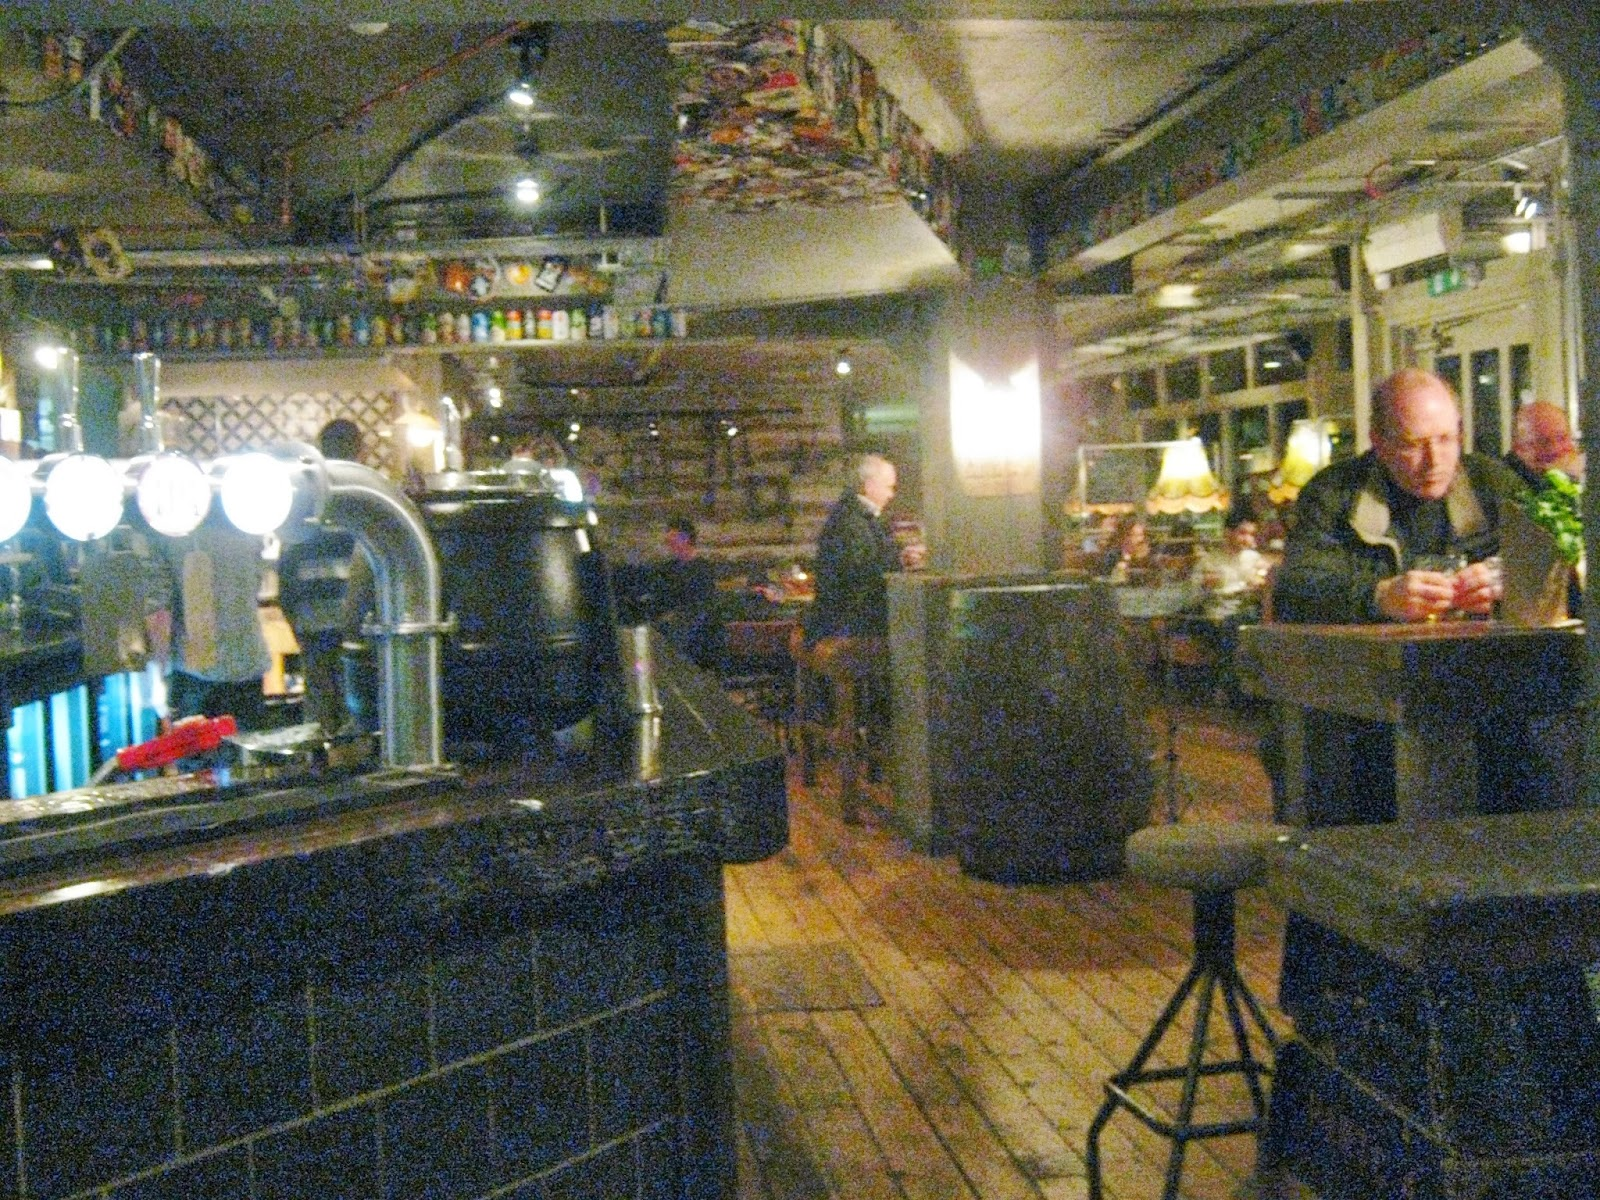 The Brew House interior - bar and dining area